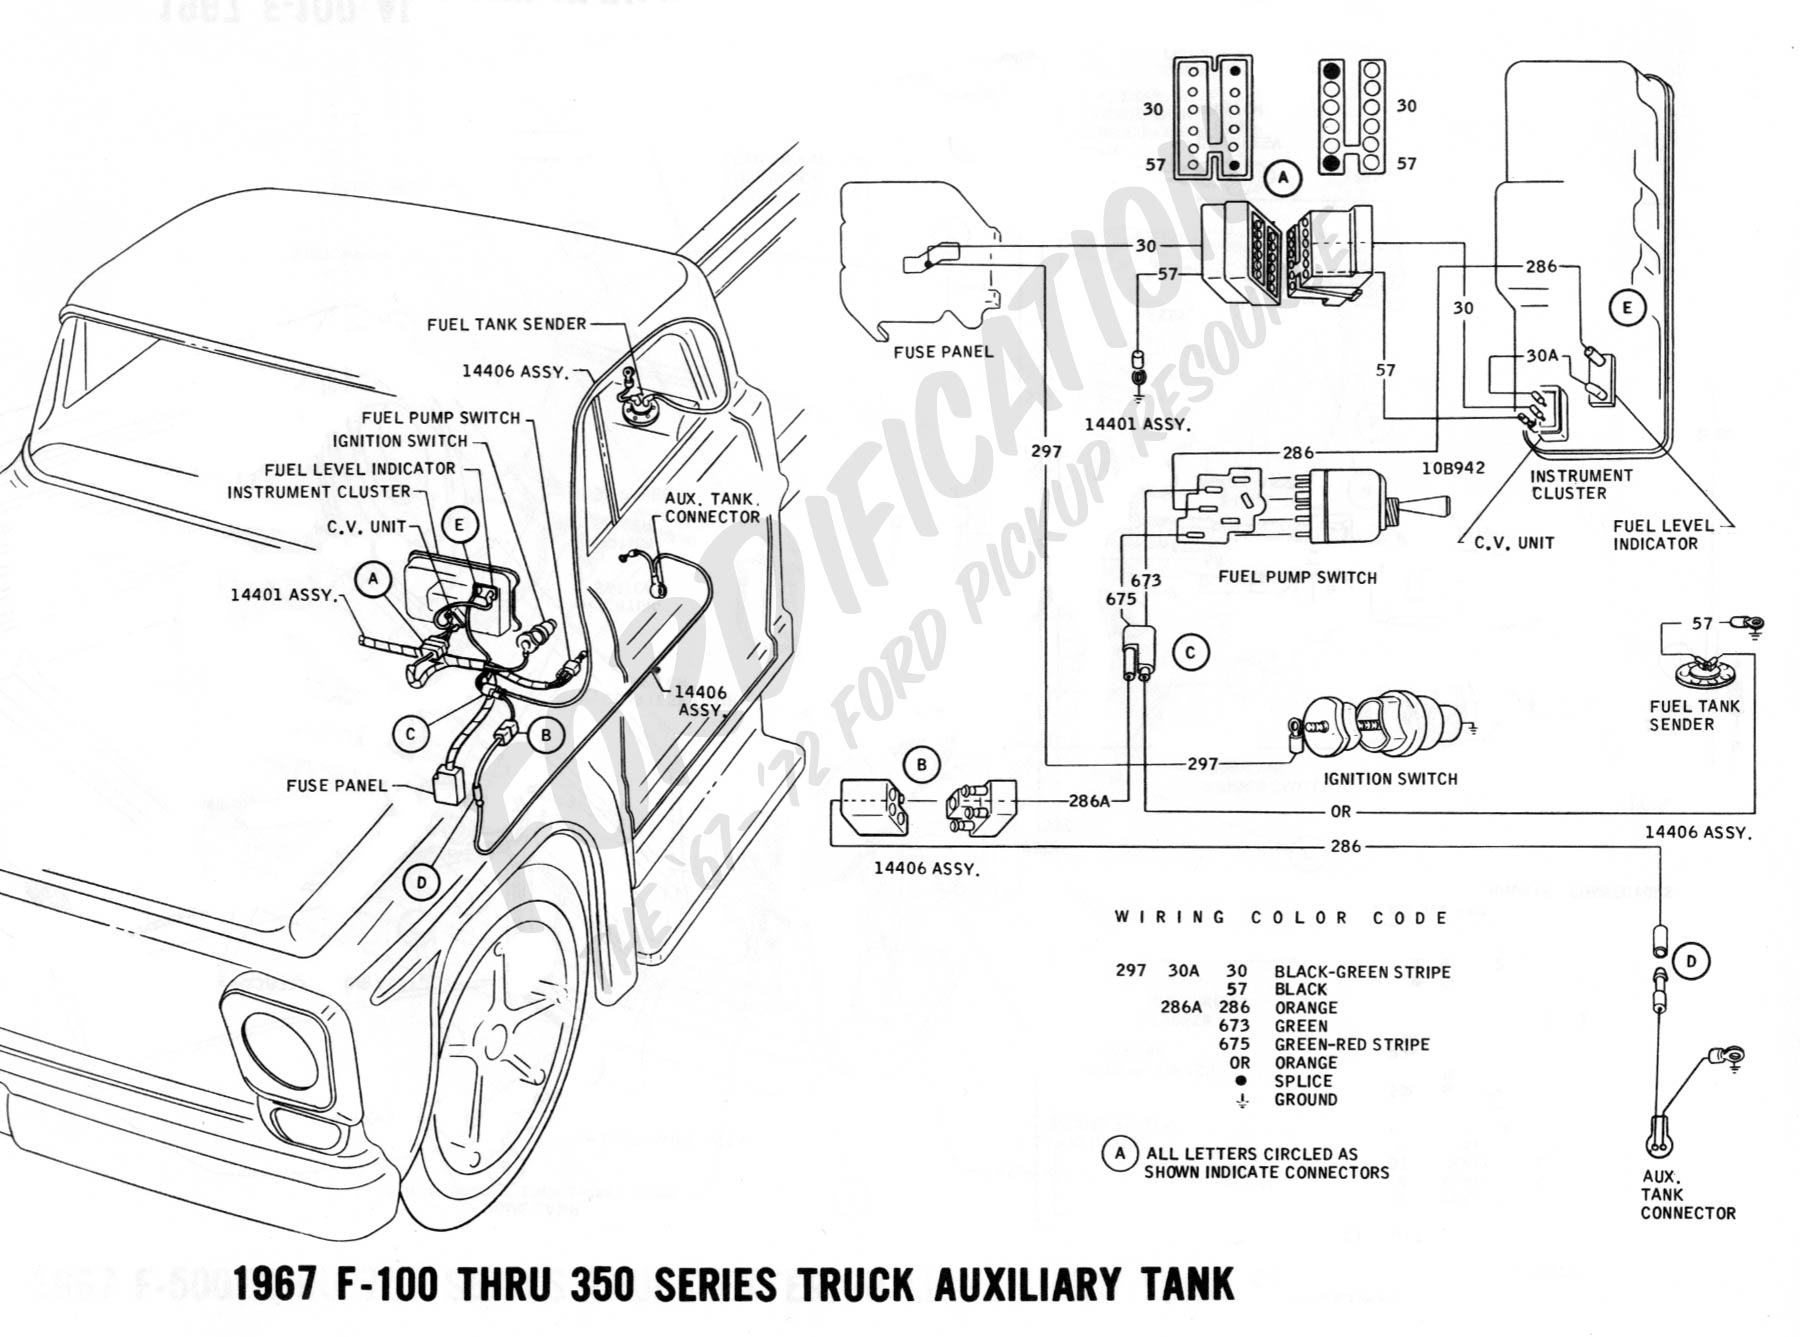 wiring 1967auxtank wiring diagram 1989 f250 fuel switch readingrat net 1990 ford truck wiring diagram at gsmx.co